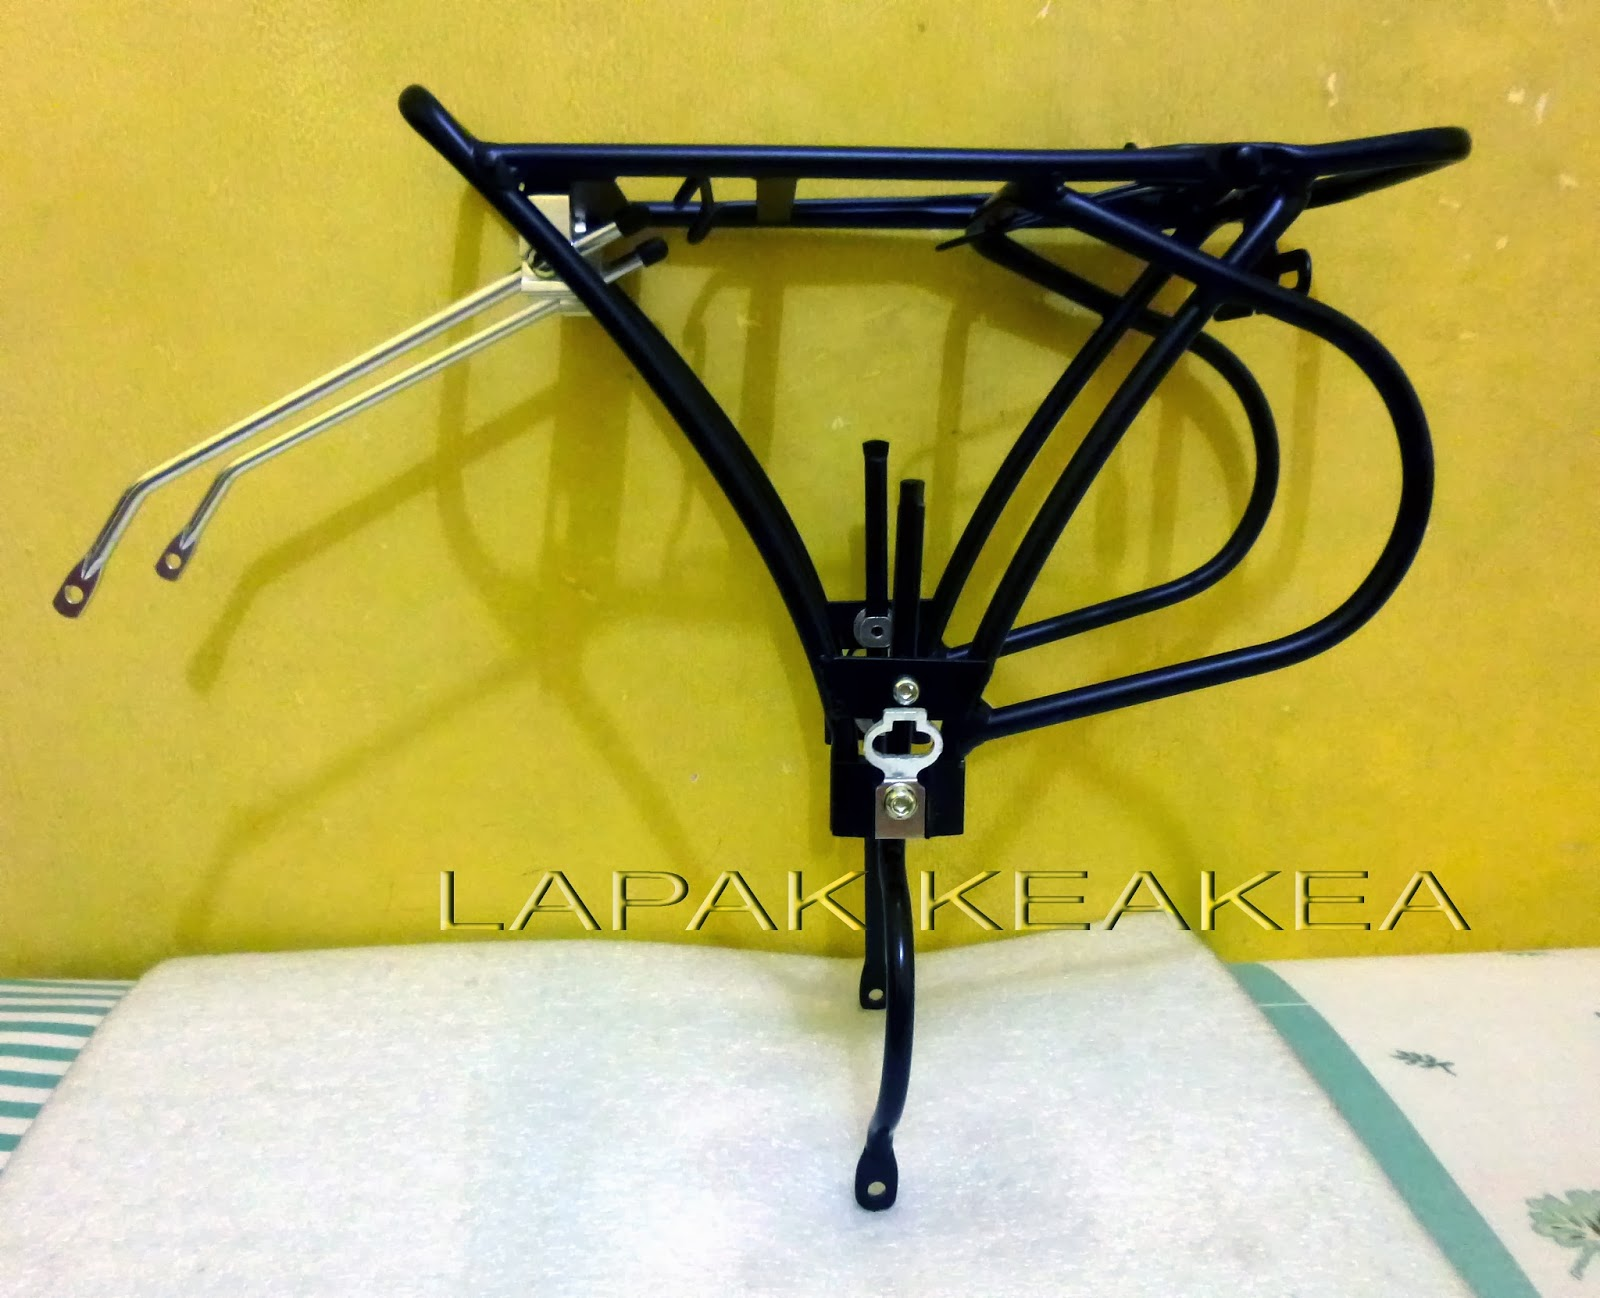 http://lapakkeakea.blogspot.com/search/label/bagasi%20mtb%20touring%20alloy%20sapience%20disc